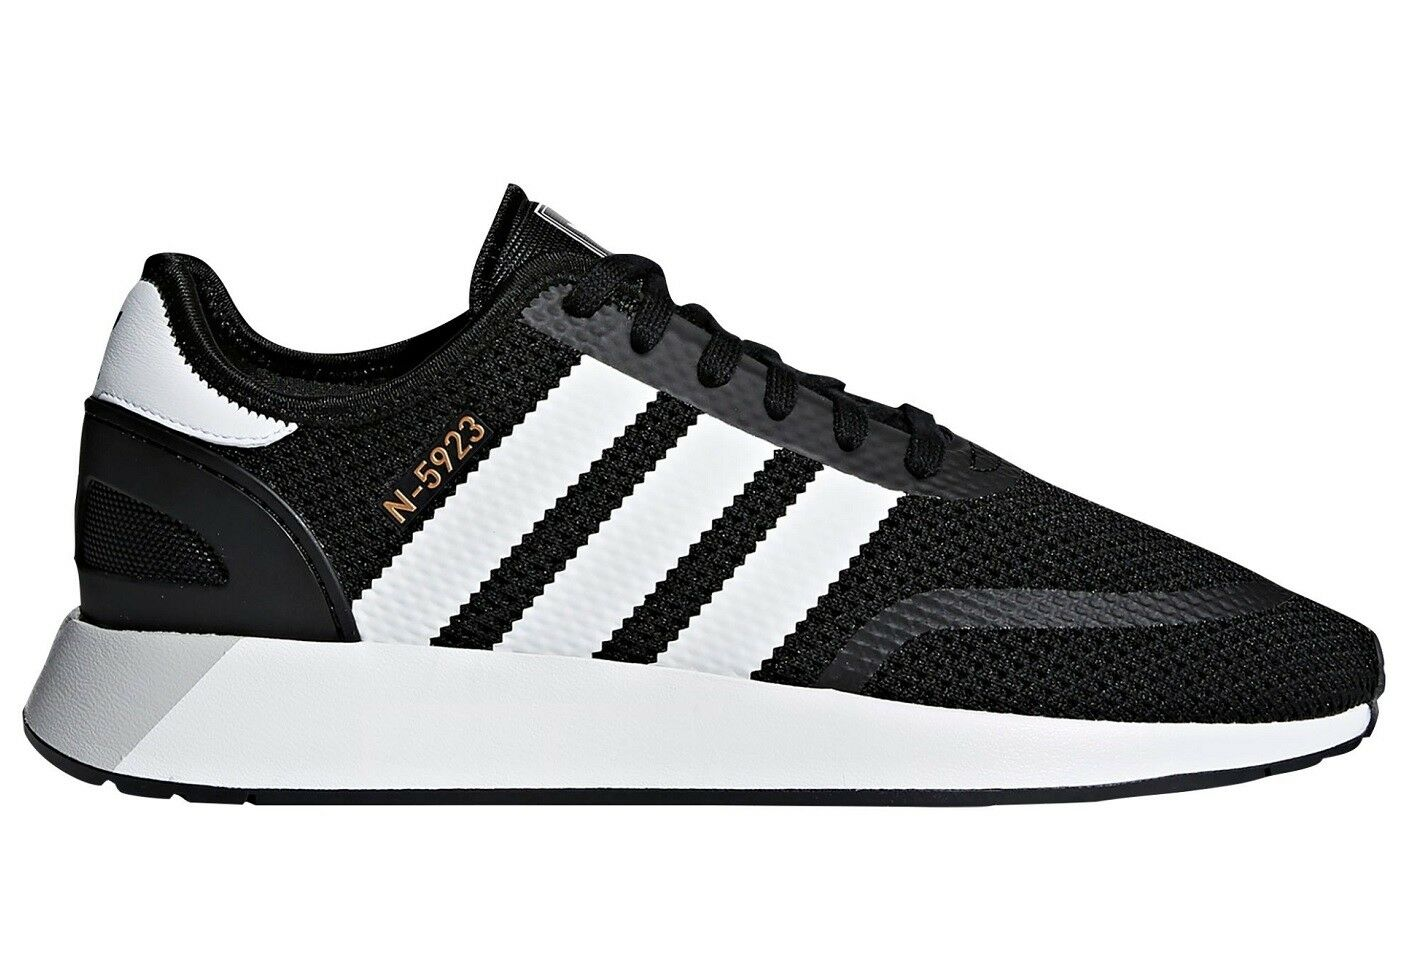 Adidas N-5923 Mens CQ2337 Black White Grey One Textile Running Shoes Size 8